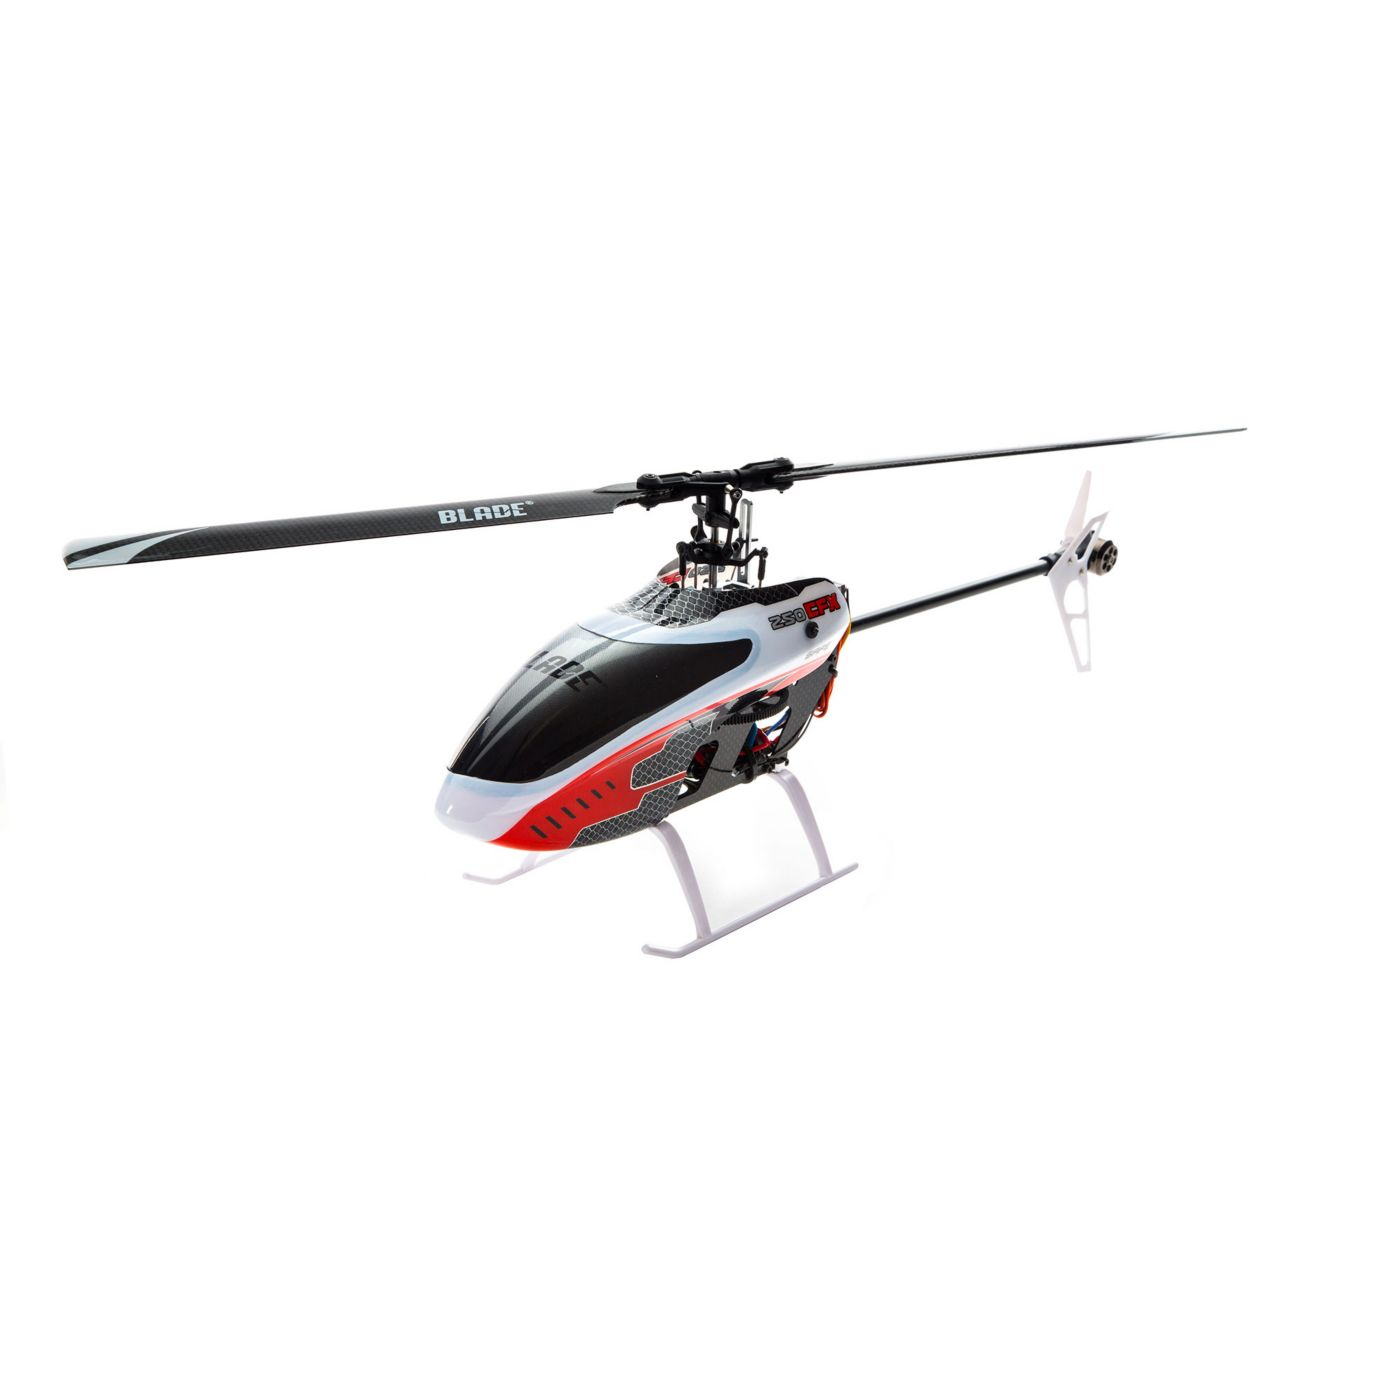 e flite rc helicopter with Blade 250 Cfx Bnf Basic Safe Technology P 28723 on Scale RC Huey Helicopter further Watch likewise Fast Rc Monster Trucks likewise Dynam T28 Trojan Rc Airplane W Retract Flaps Gray Pnp in addition Blade MSR Gummiringe Kabinen.